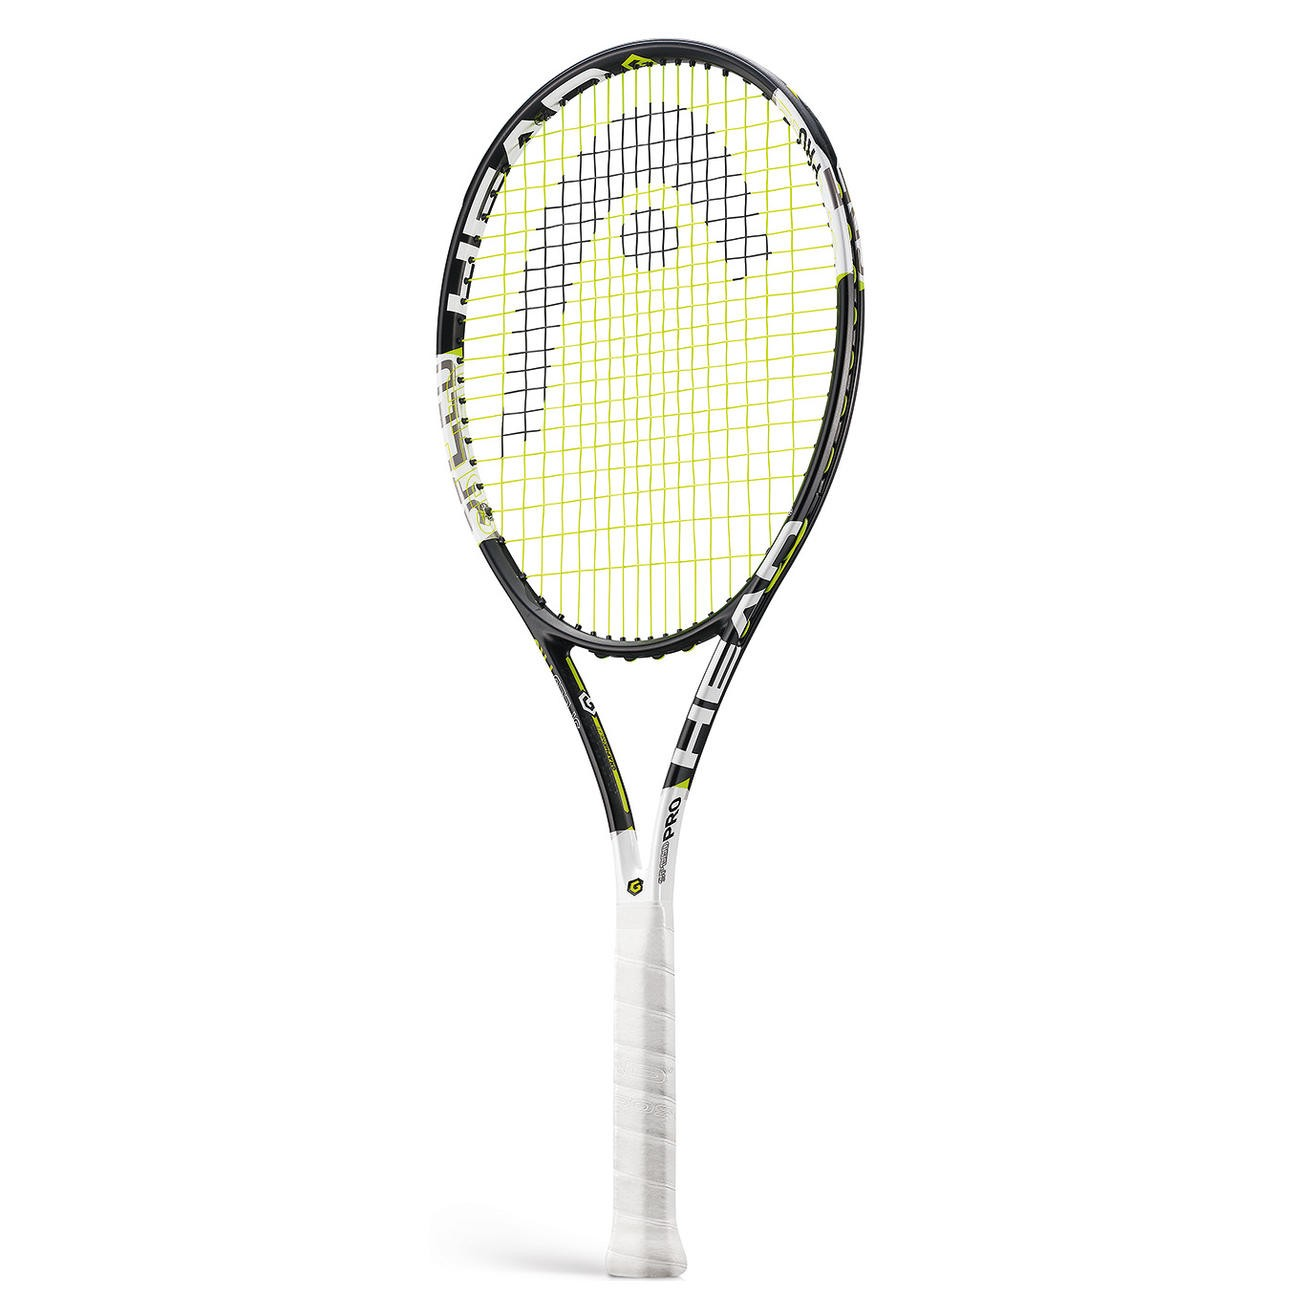 Rakieta tenisowa Head Graphene XT Speed Pro